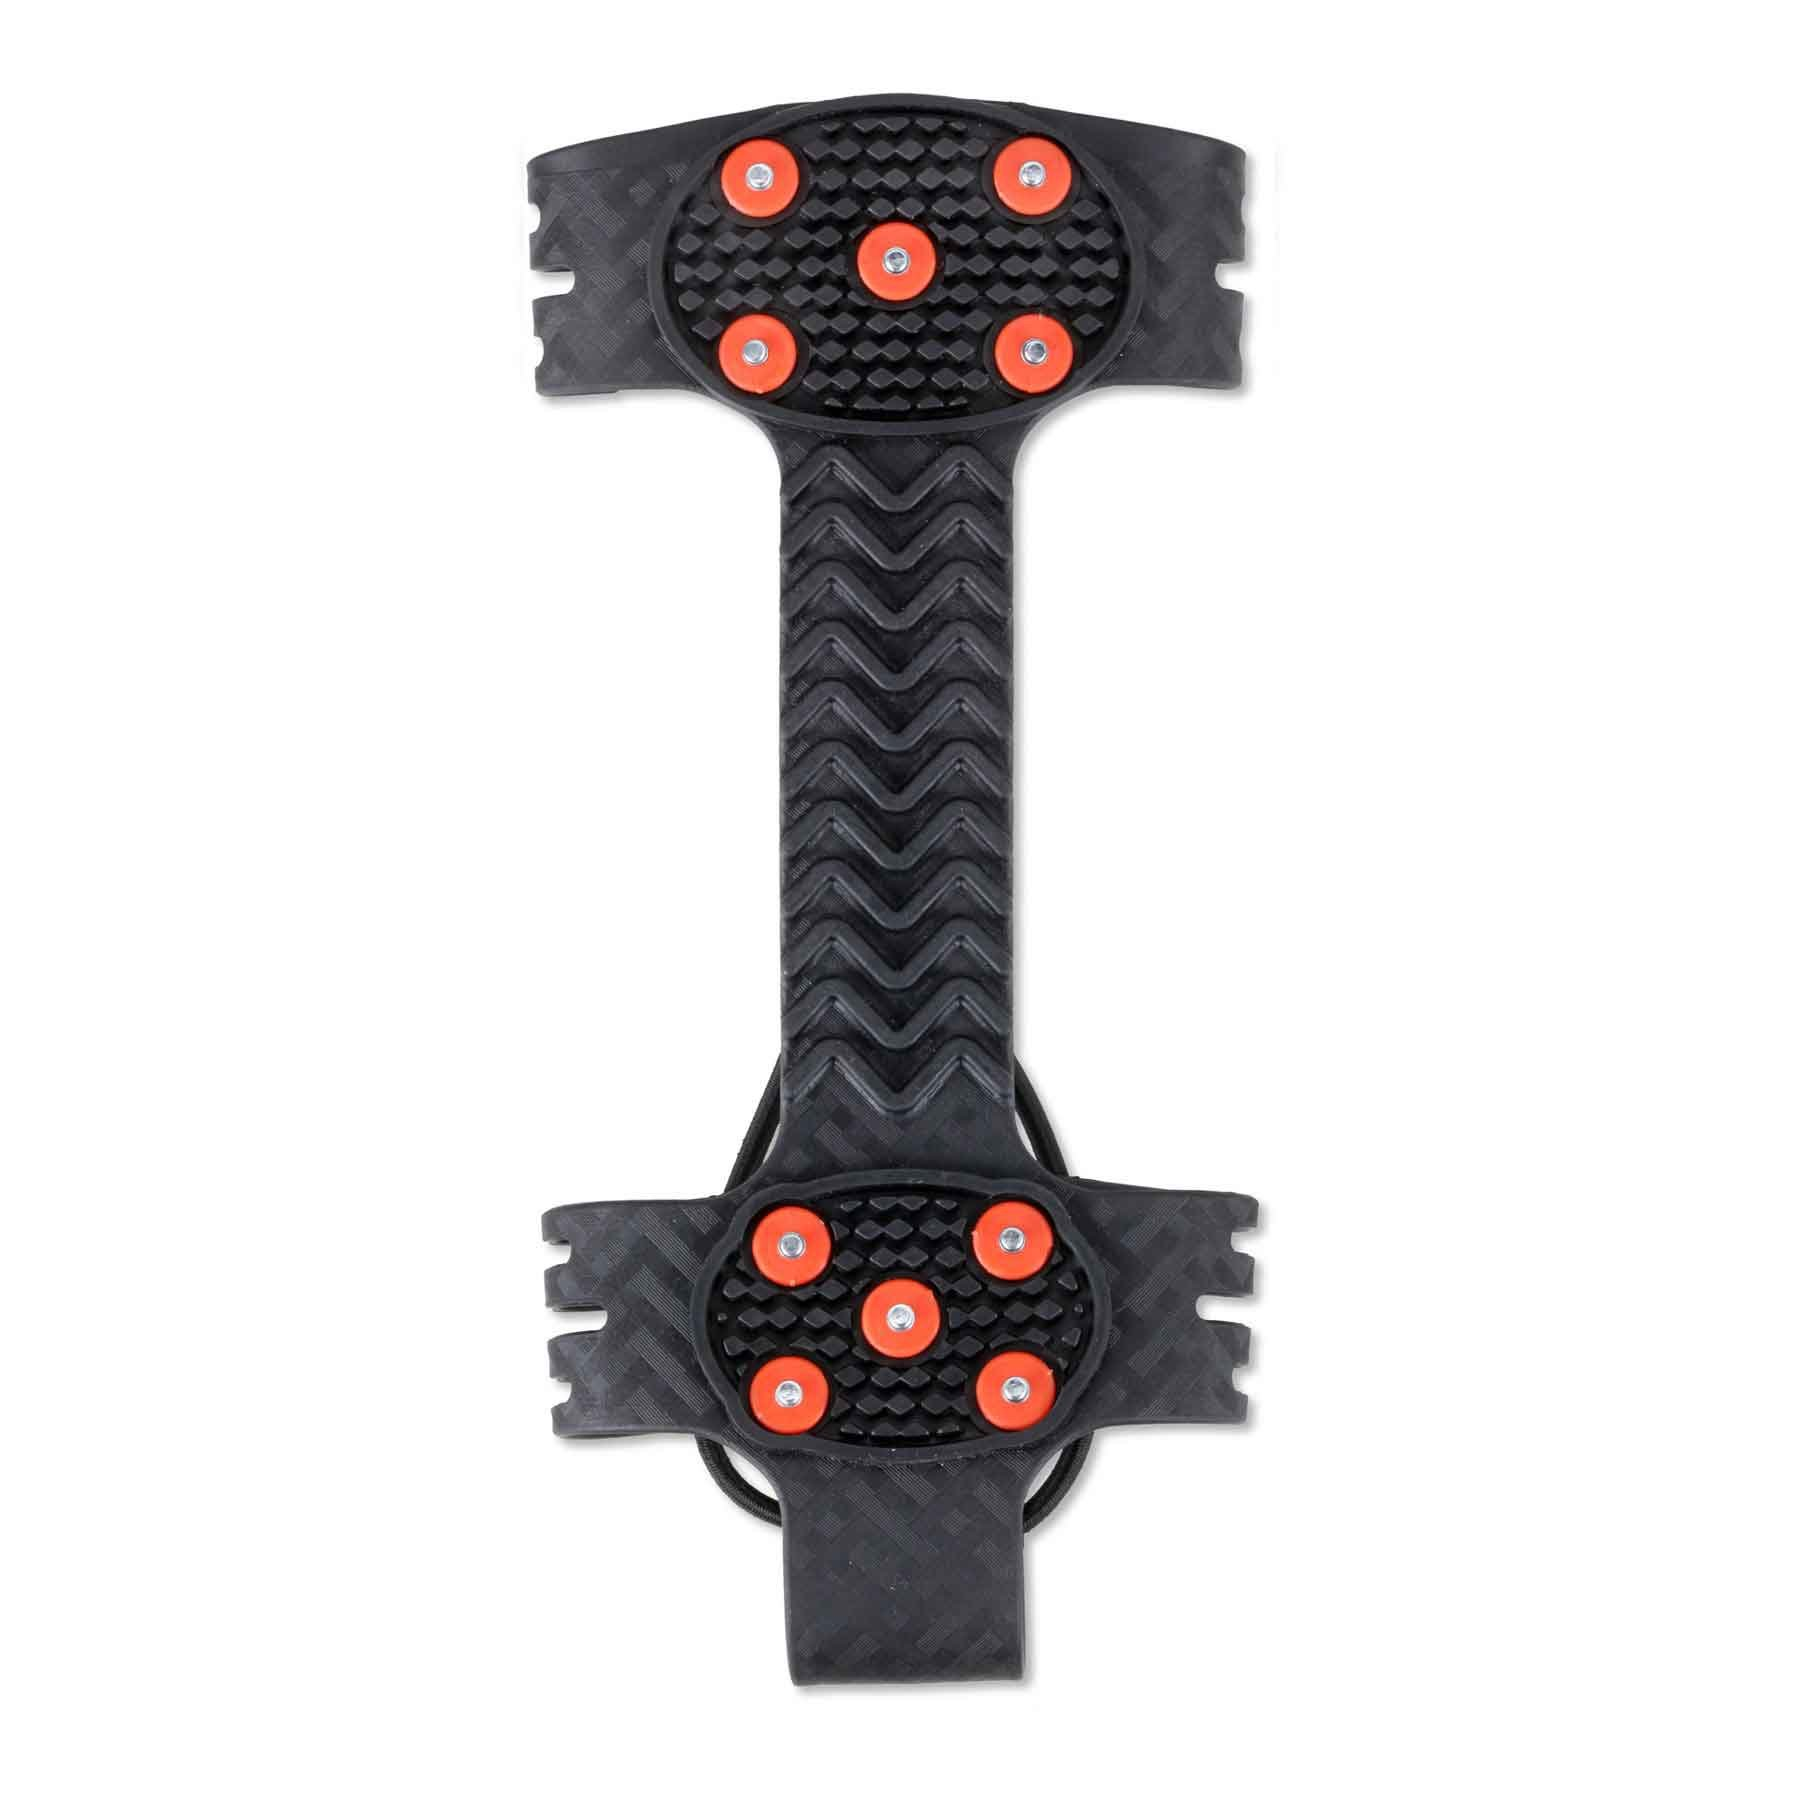 Ergodyne TREX 6310 Adjustable Traction Cleat Grips Ice and Snow, One-Piece Easily Attaches Over Shoe/Boot with Carbon Steel Spikes to Provide Anti-Slip Solution, X-Large by Ergodyne